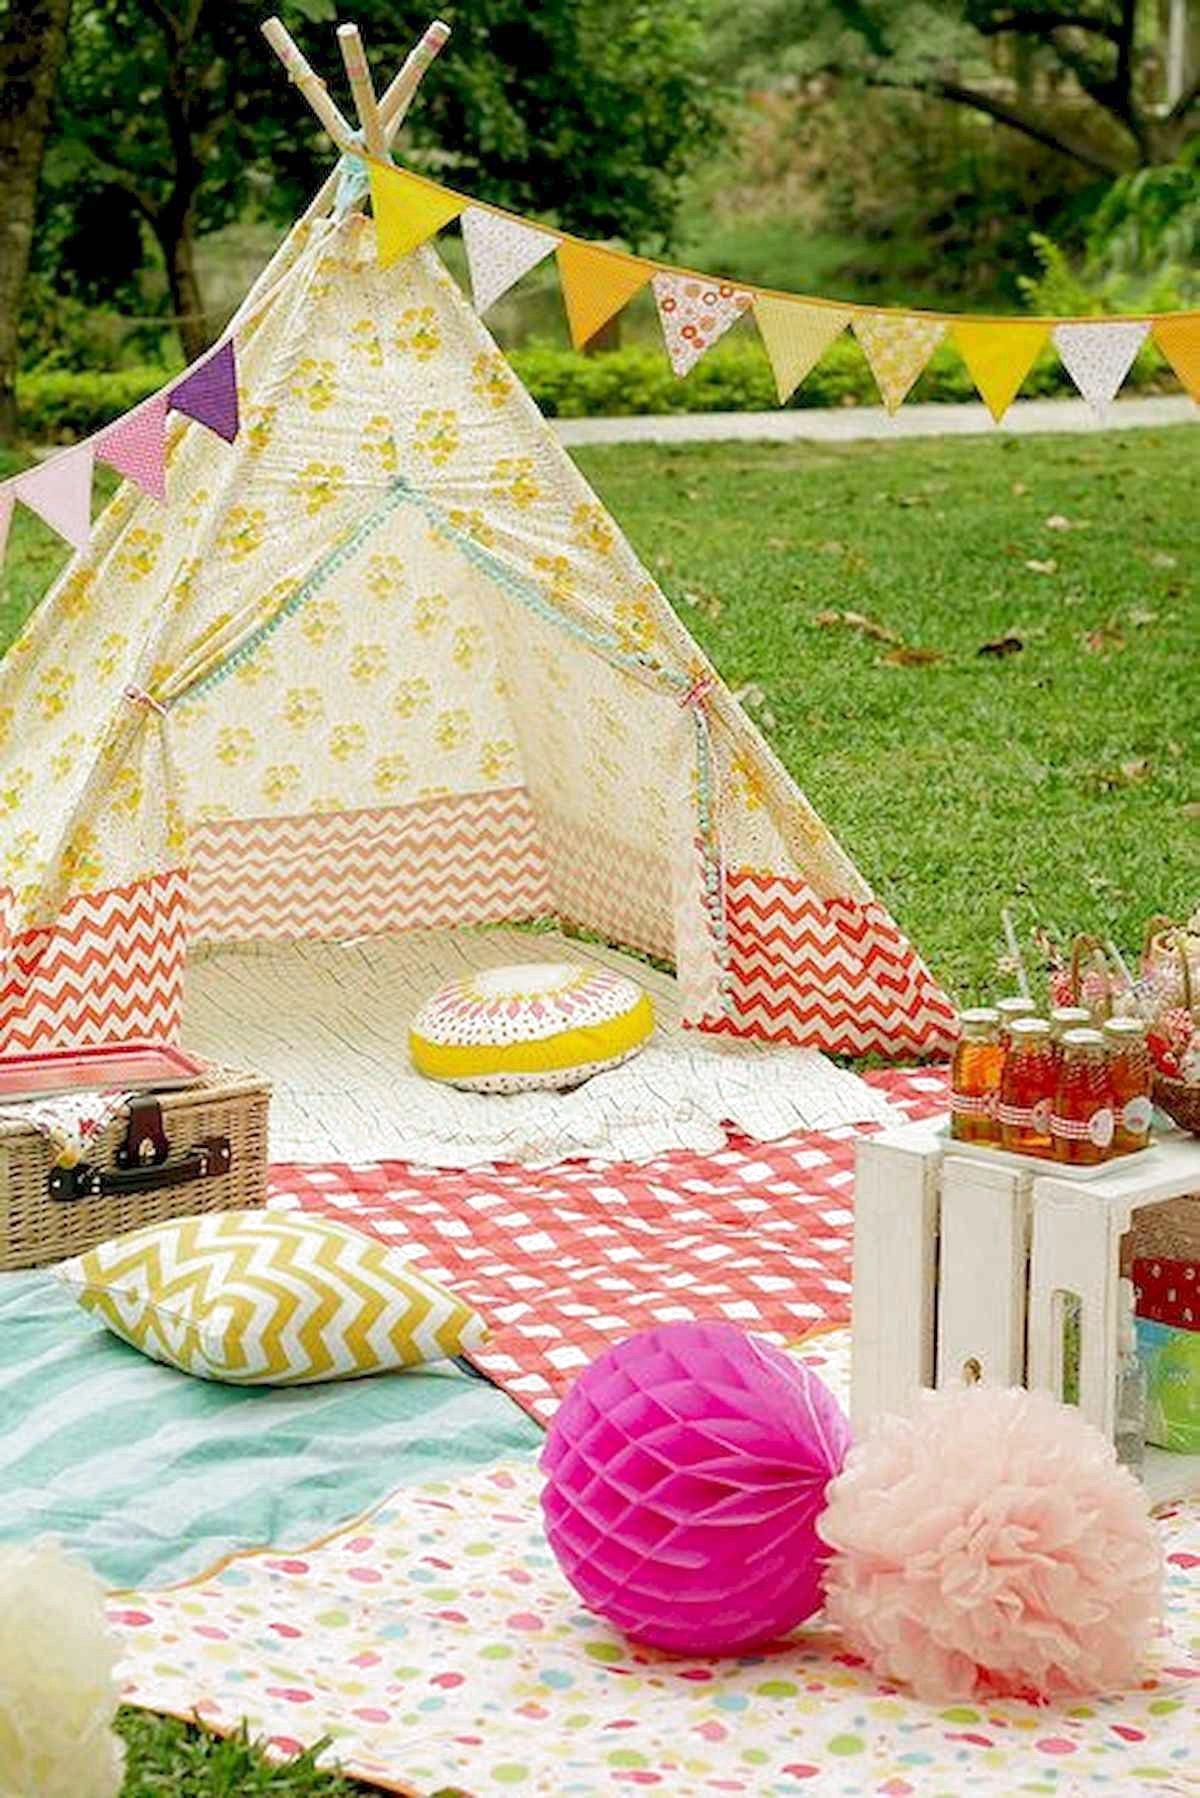 63 Cool Outdoor Summer Party Decorations Ideas | Summer ...